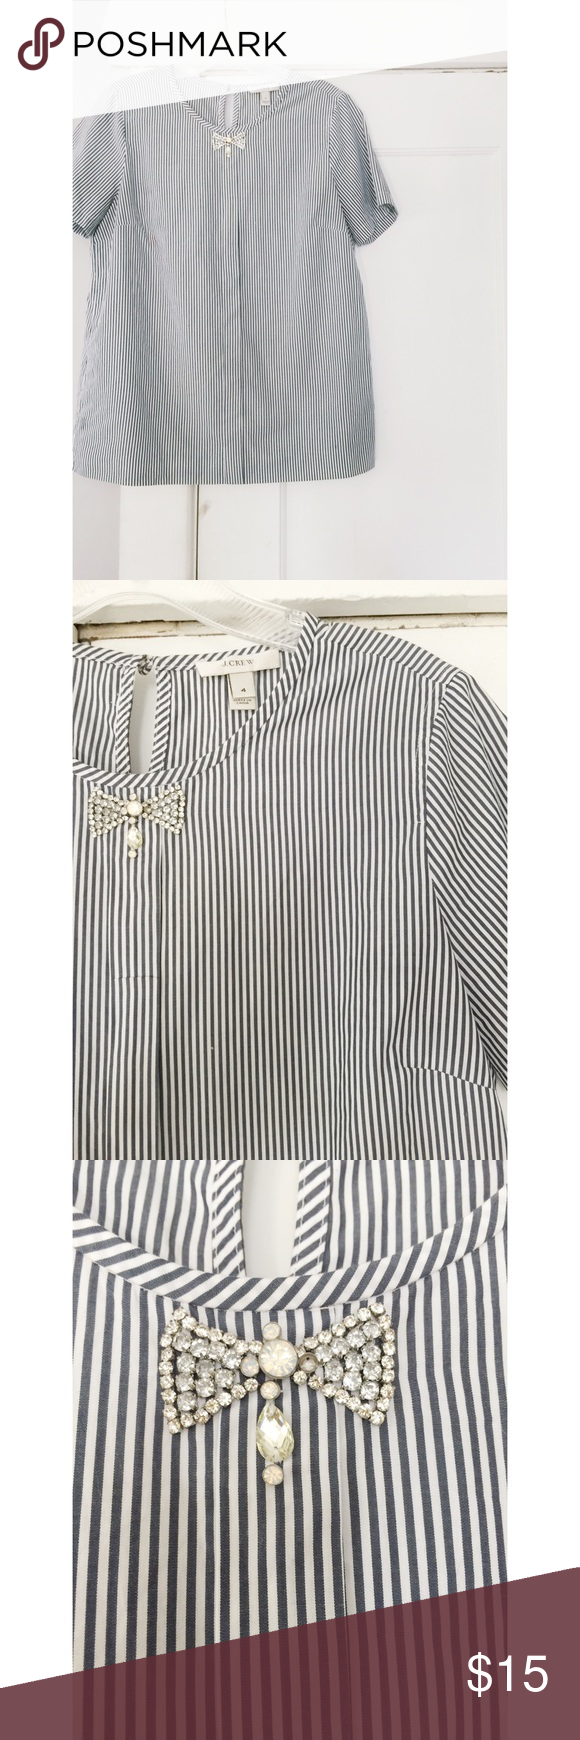 J. Crew Embellished Top J. Crew Embellished Top.  Rhinestone bow.  Women's size 4.  True to size.  Blue and white pin stripe. J. Crew Tops Blouses